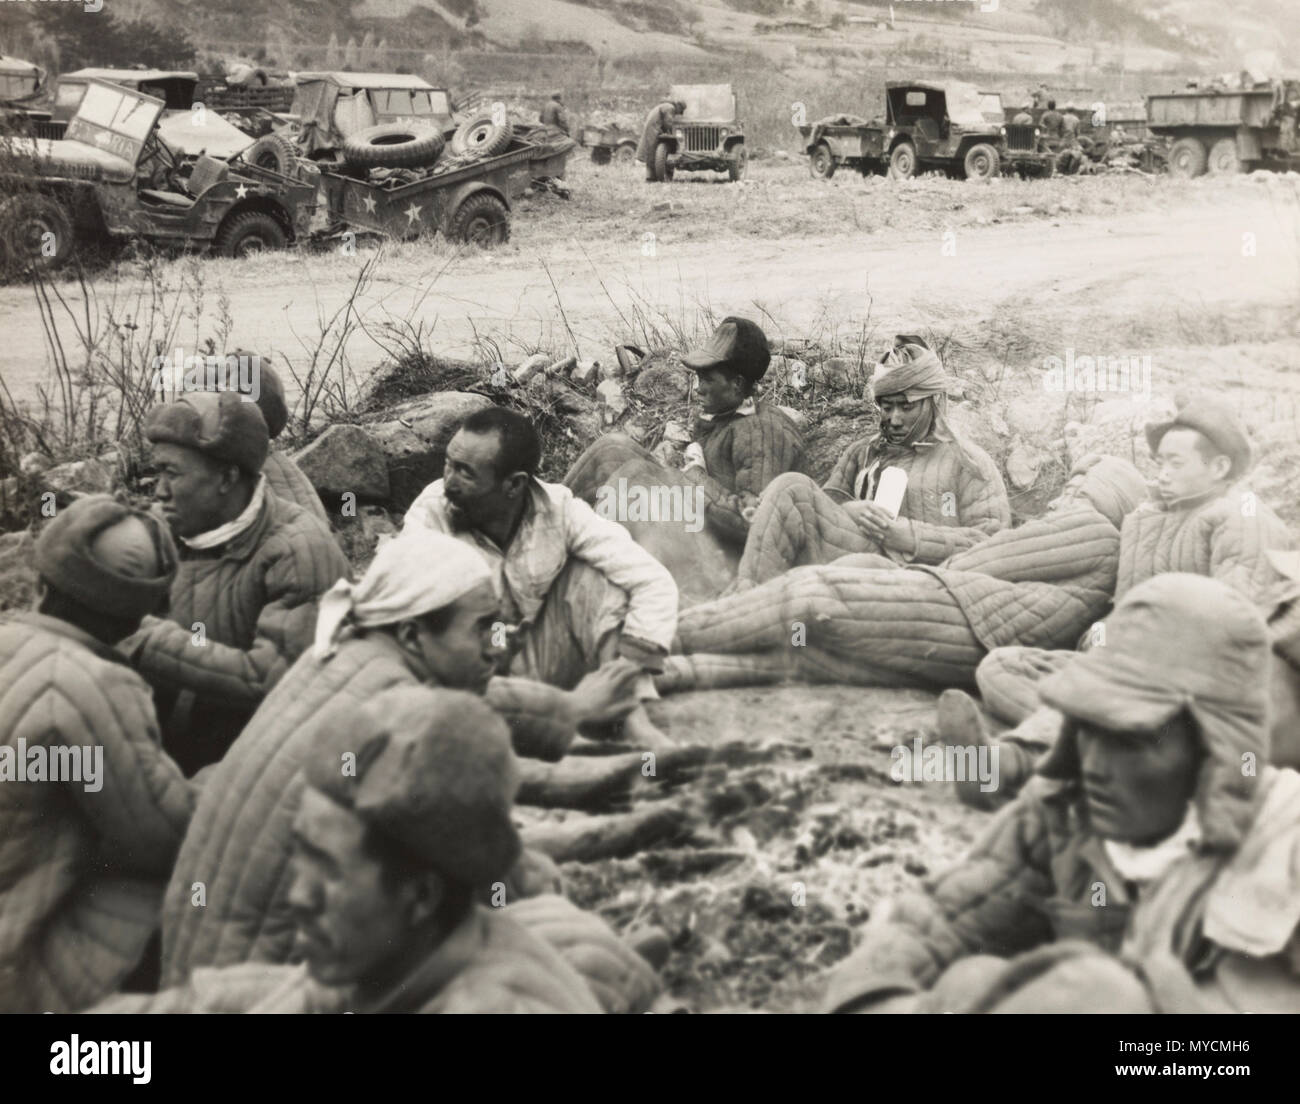 Chinese soldiers captured by the 7th Marines in northeast Korea on Nov 5 1950 - Stock Image